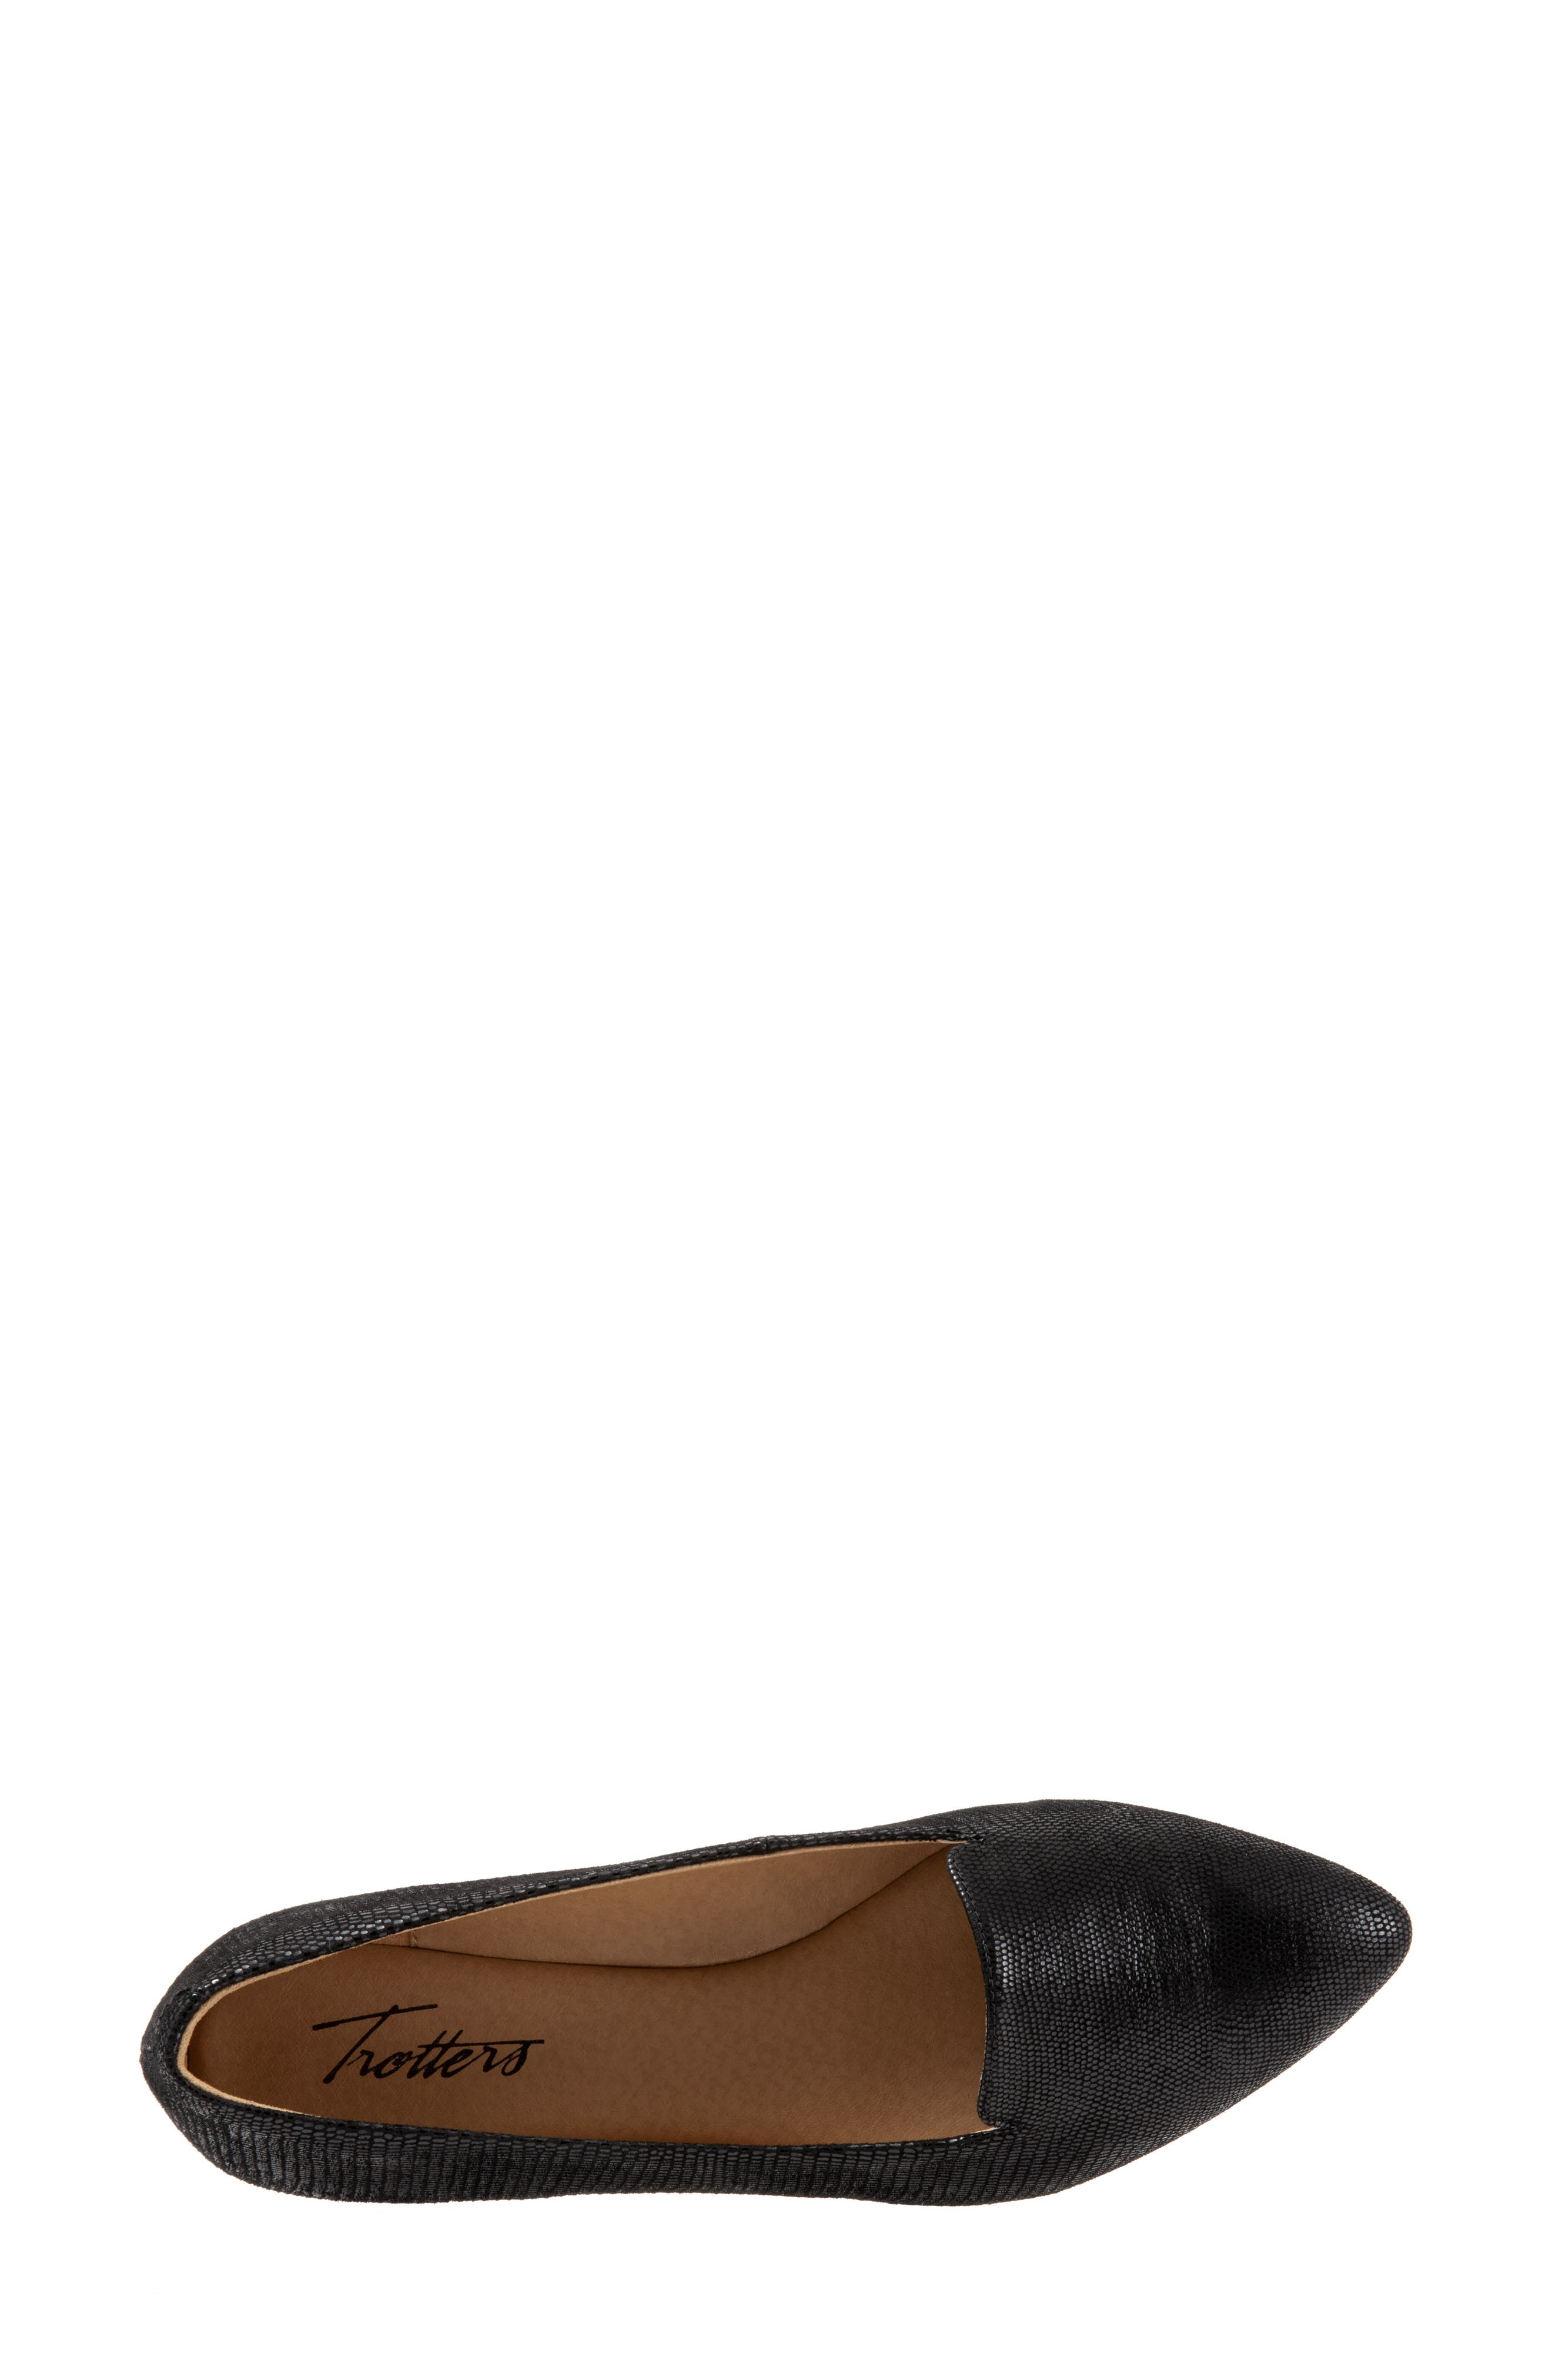 TROTTERS, Harlowe Pointy Toe Loafer, Alternate thumbnail 5, color, DARK BLACK LEATHER